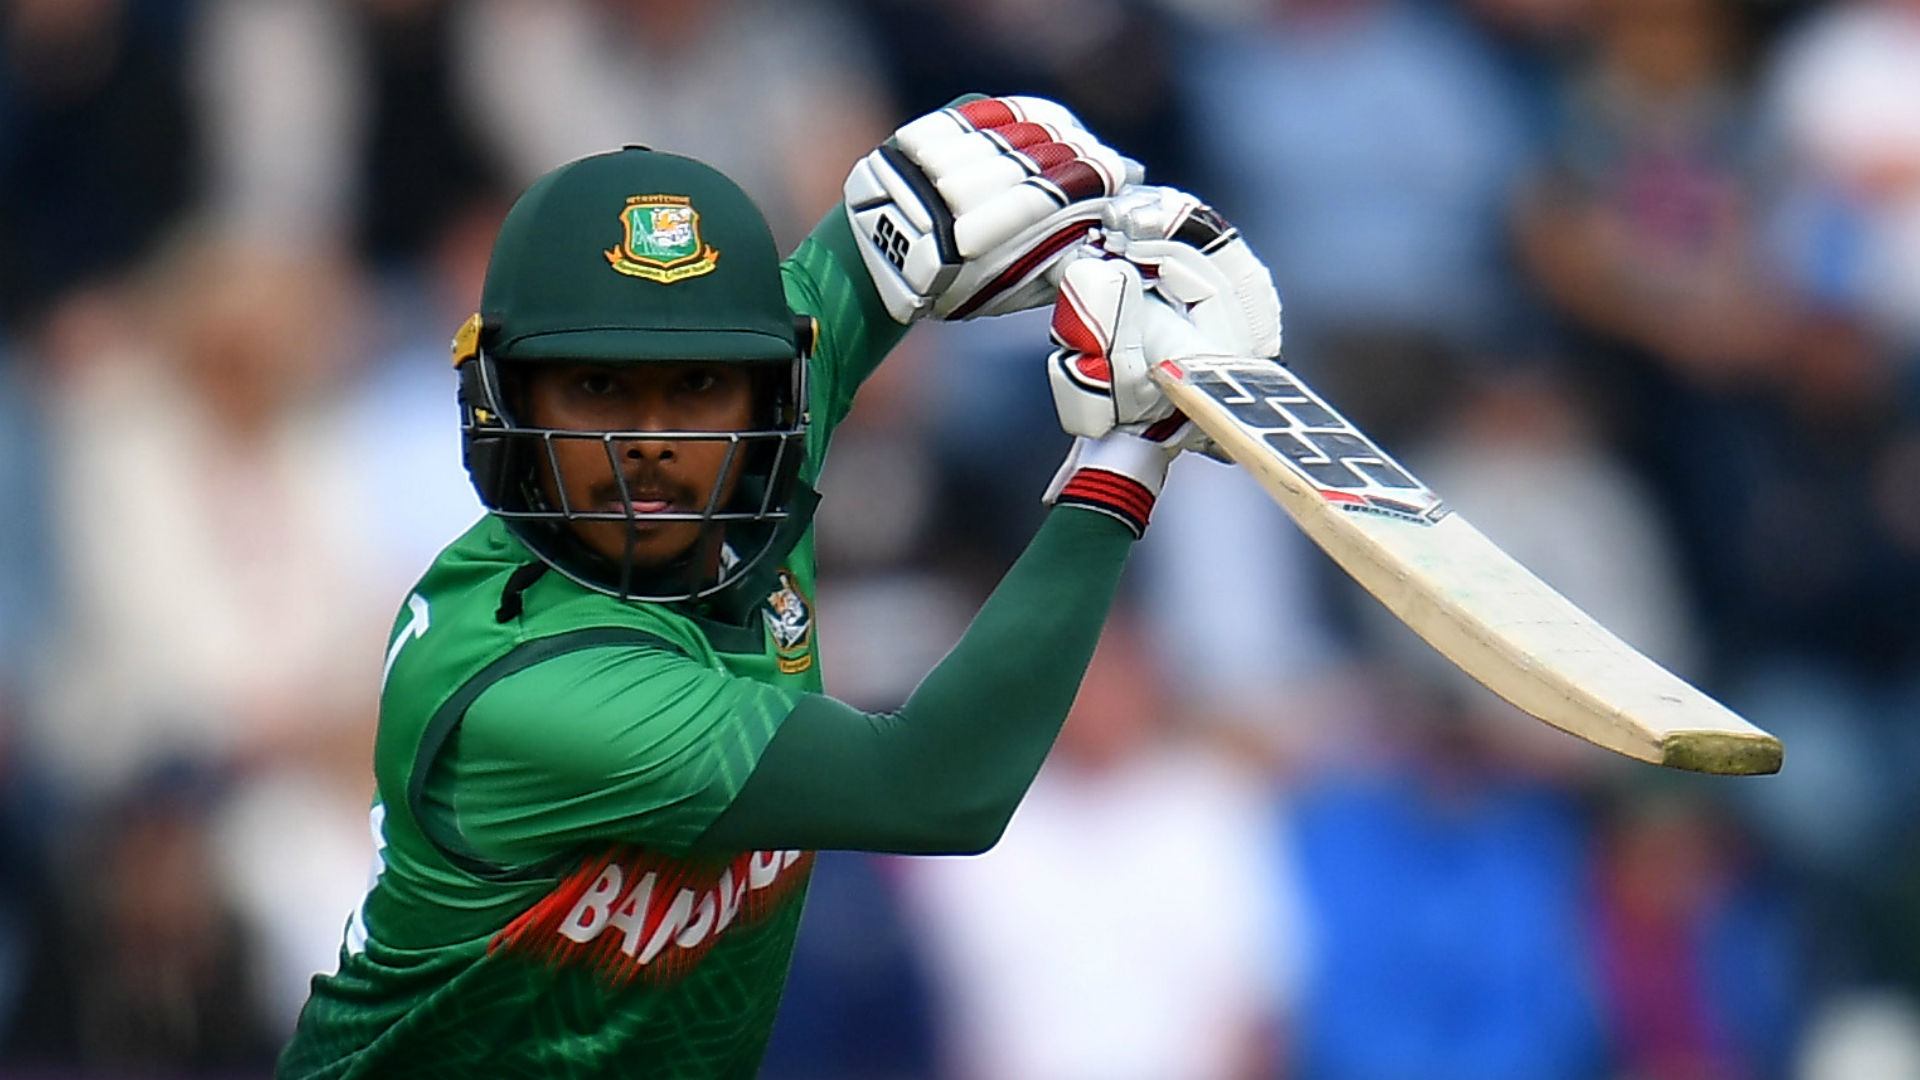 Bangladesh squeeze home against Zimbabwe in T20 opener